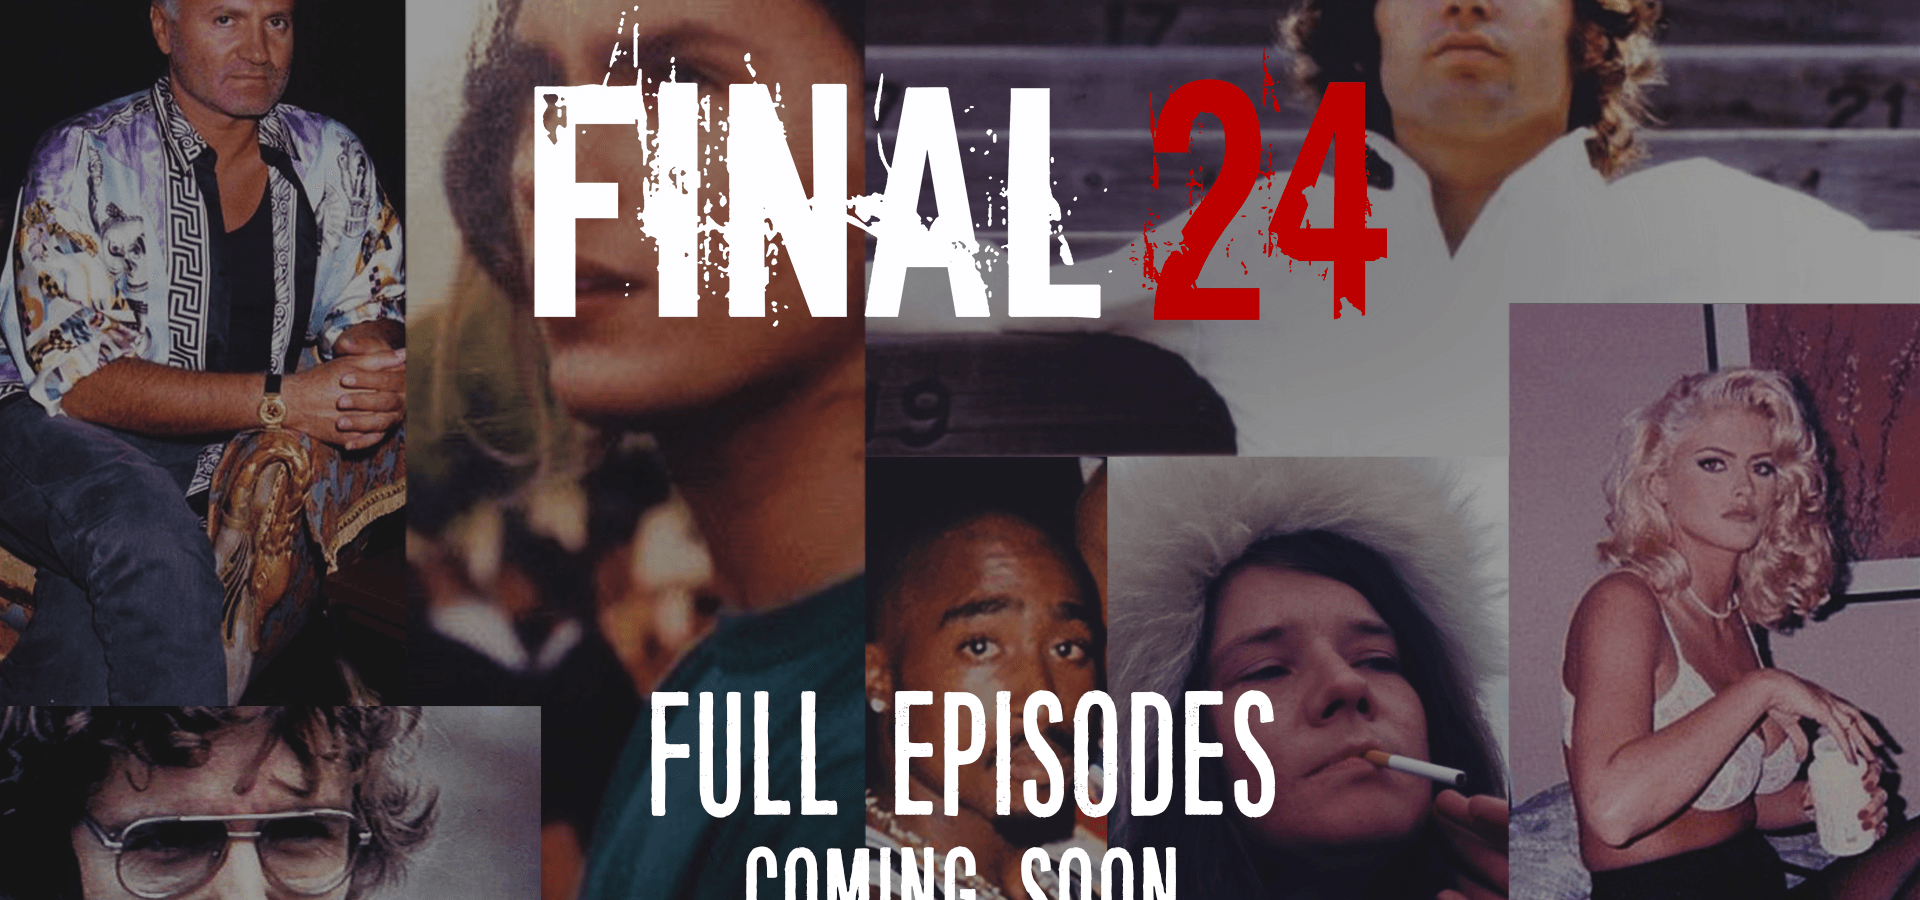 STREAMING SOON Full Episodes of Final 24